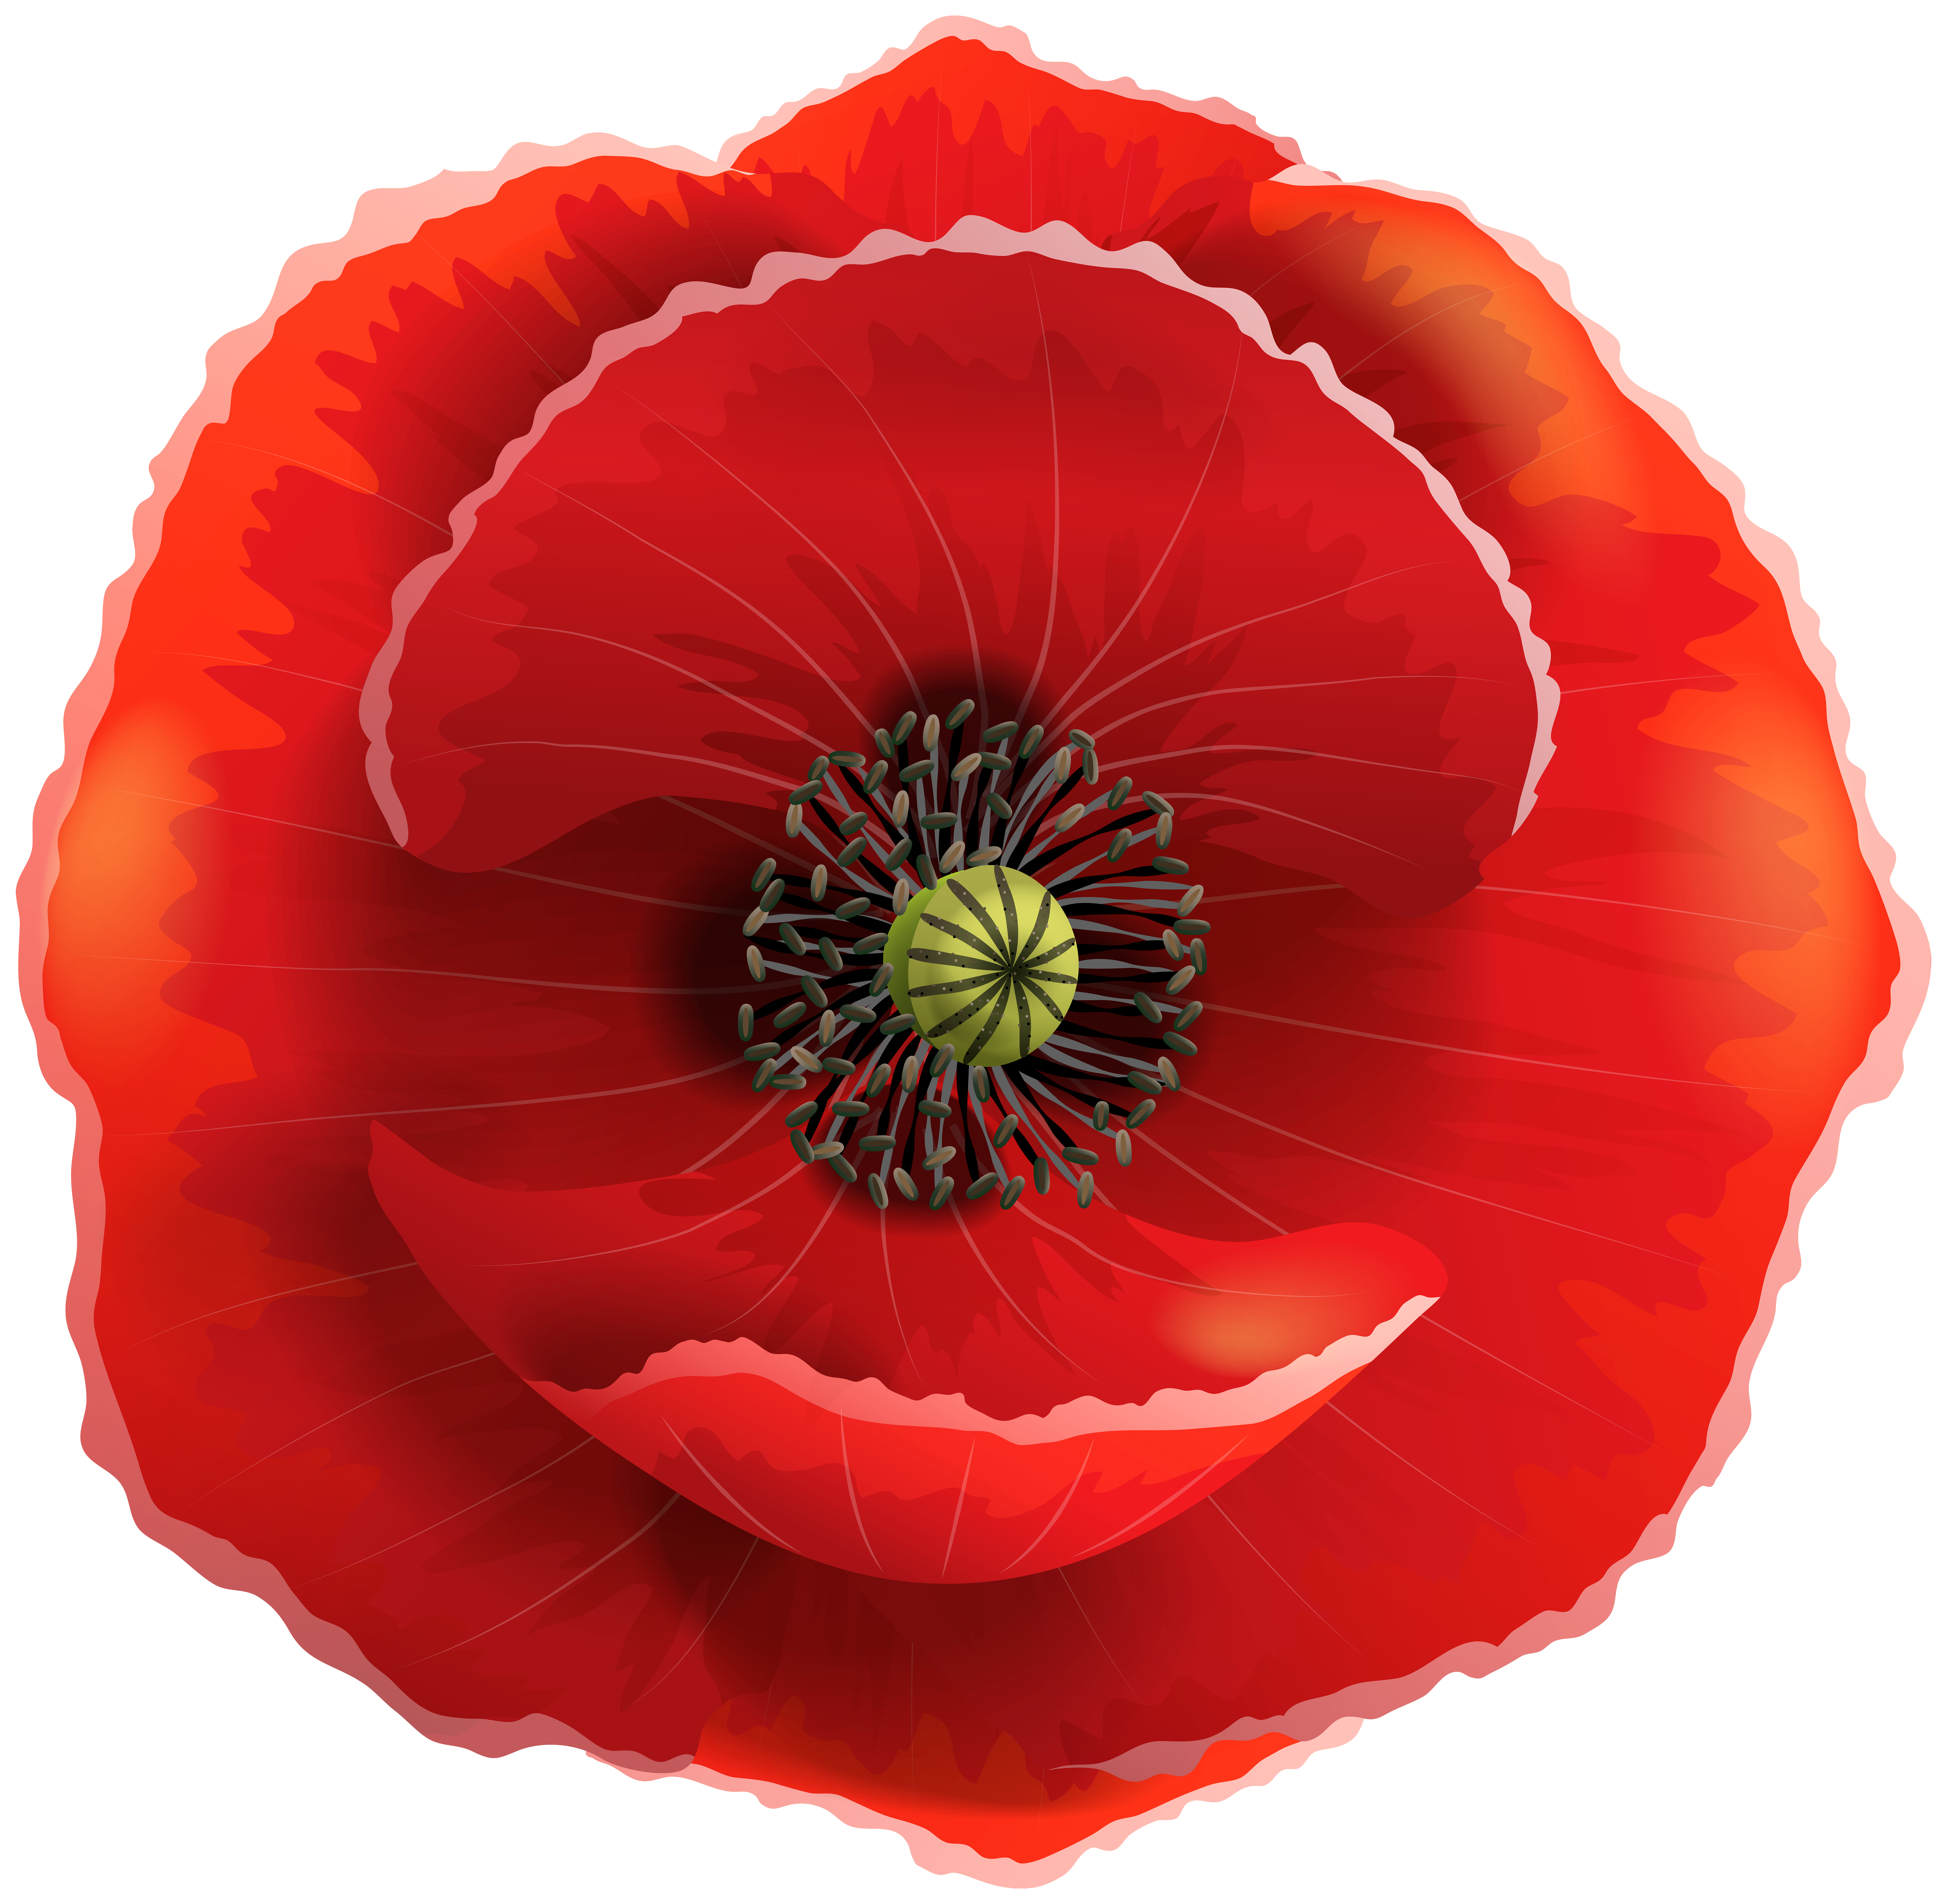 Transparent png clip art. Poppy clipart clear background